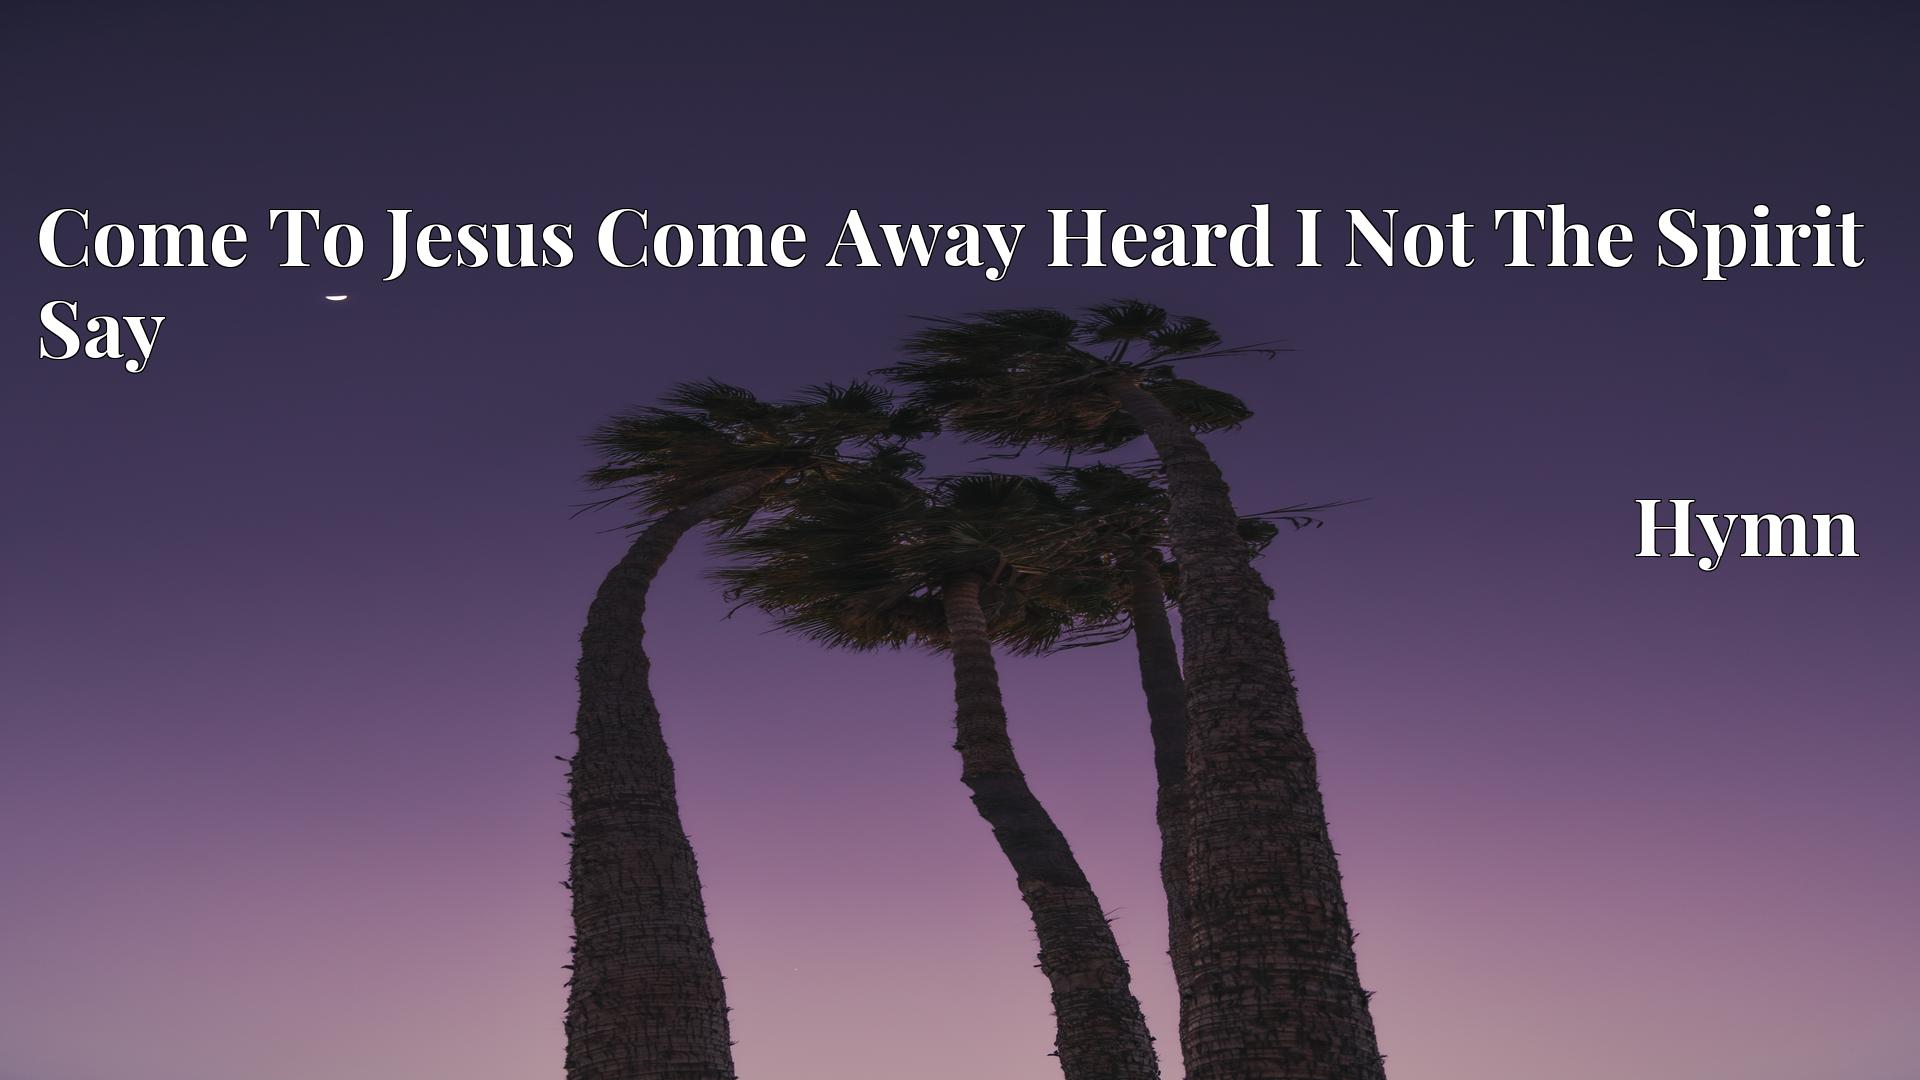 Come To Jesus Come Away Heard I Not The Spirit Say - Hymn